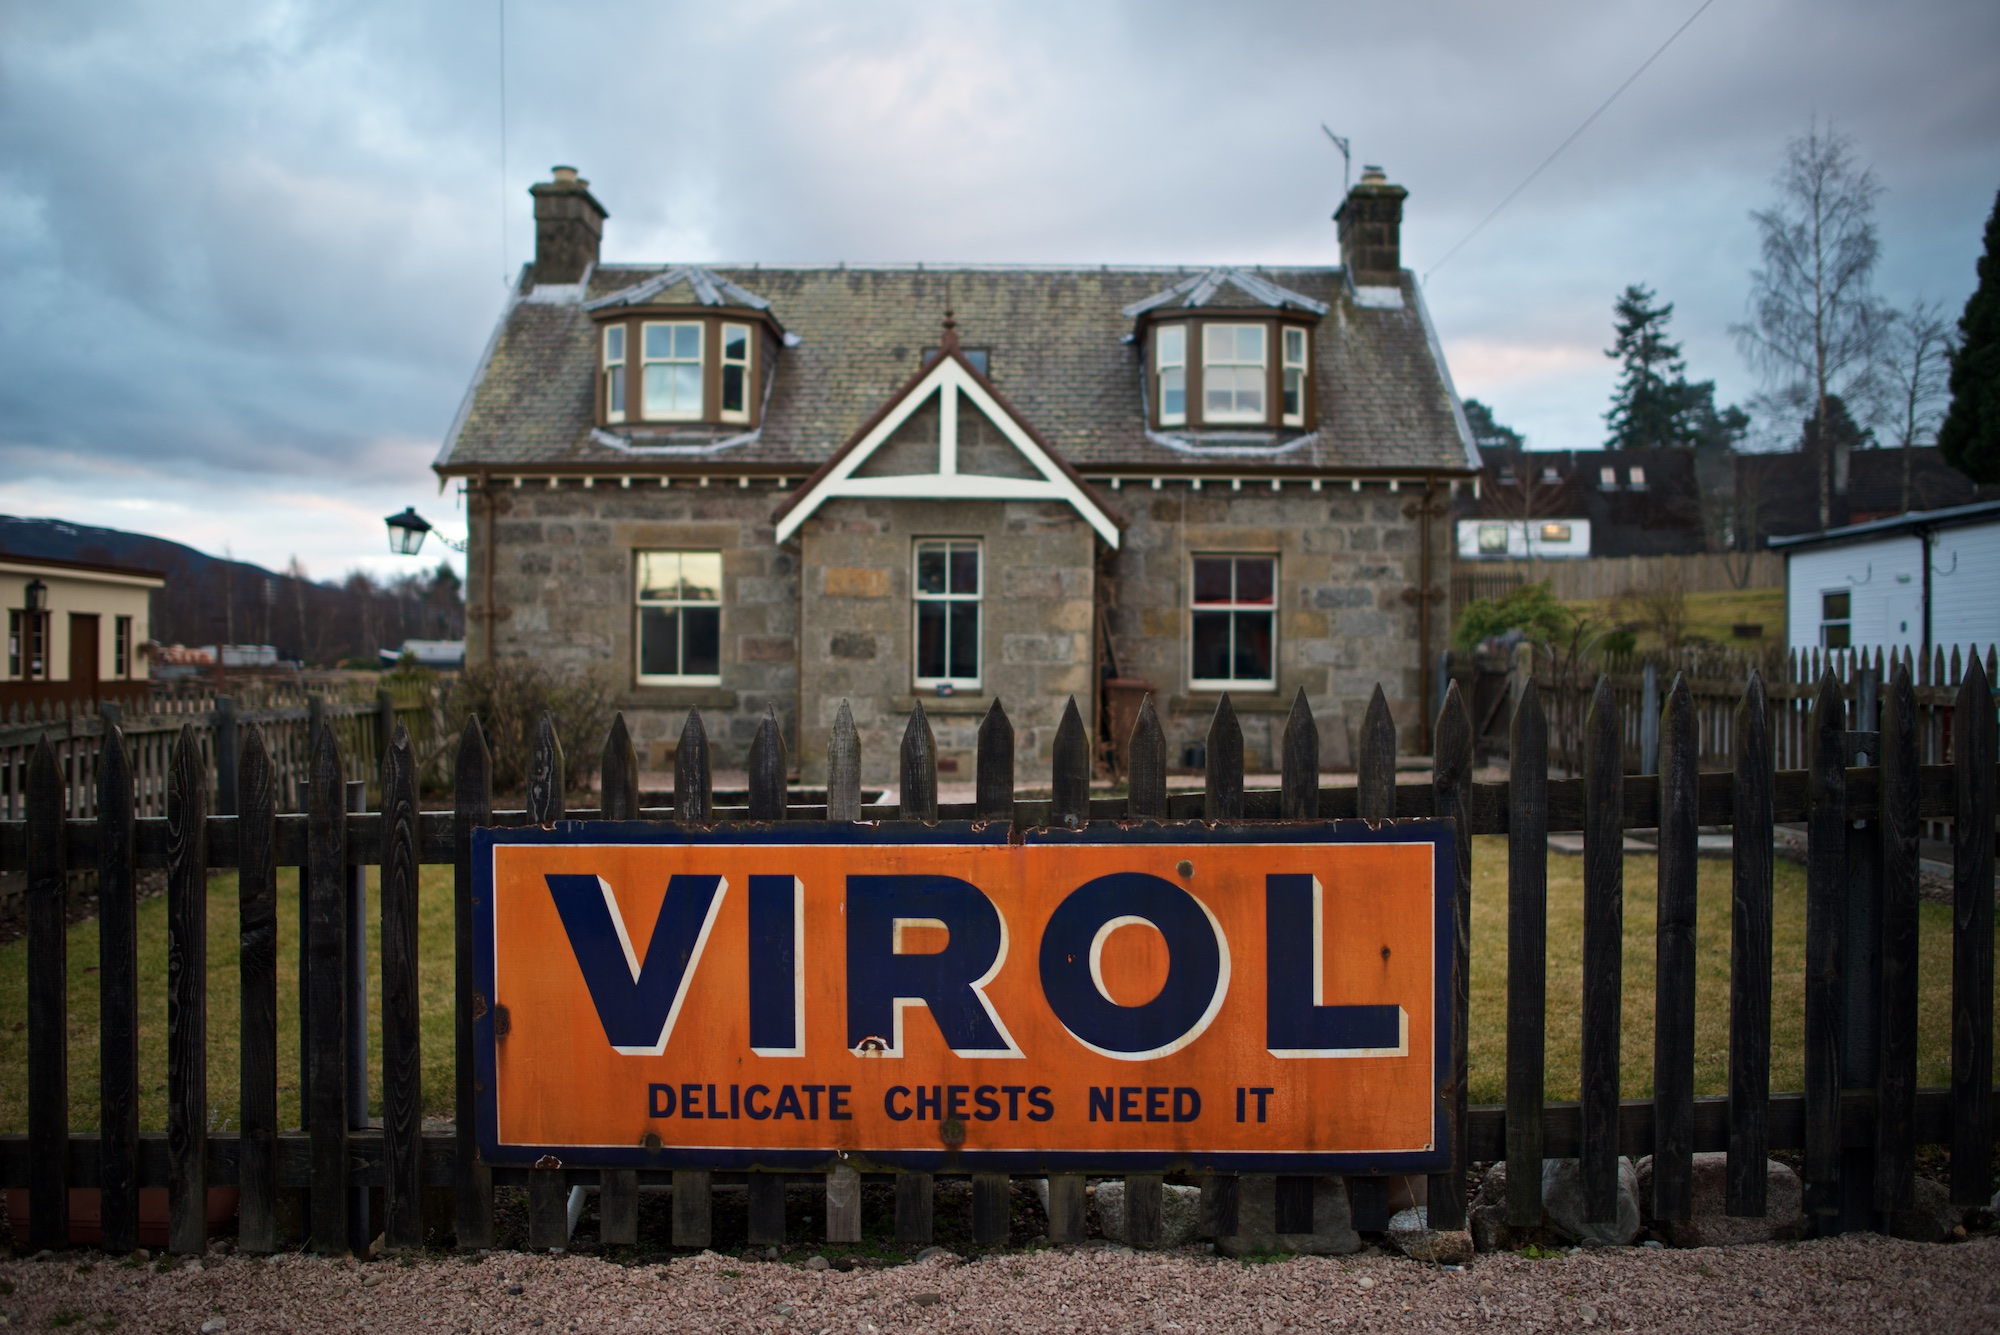 Facing straight on to a large orange sign in front of a cottage. The sign is written in large uppercase blue letters and reads 'VIROL'.